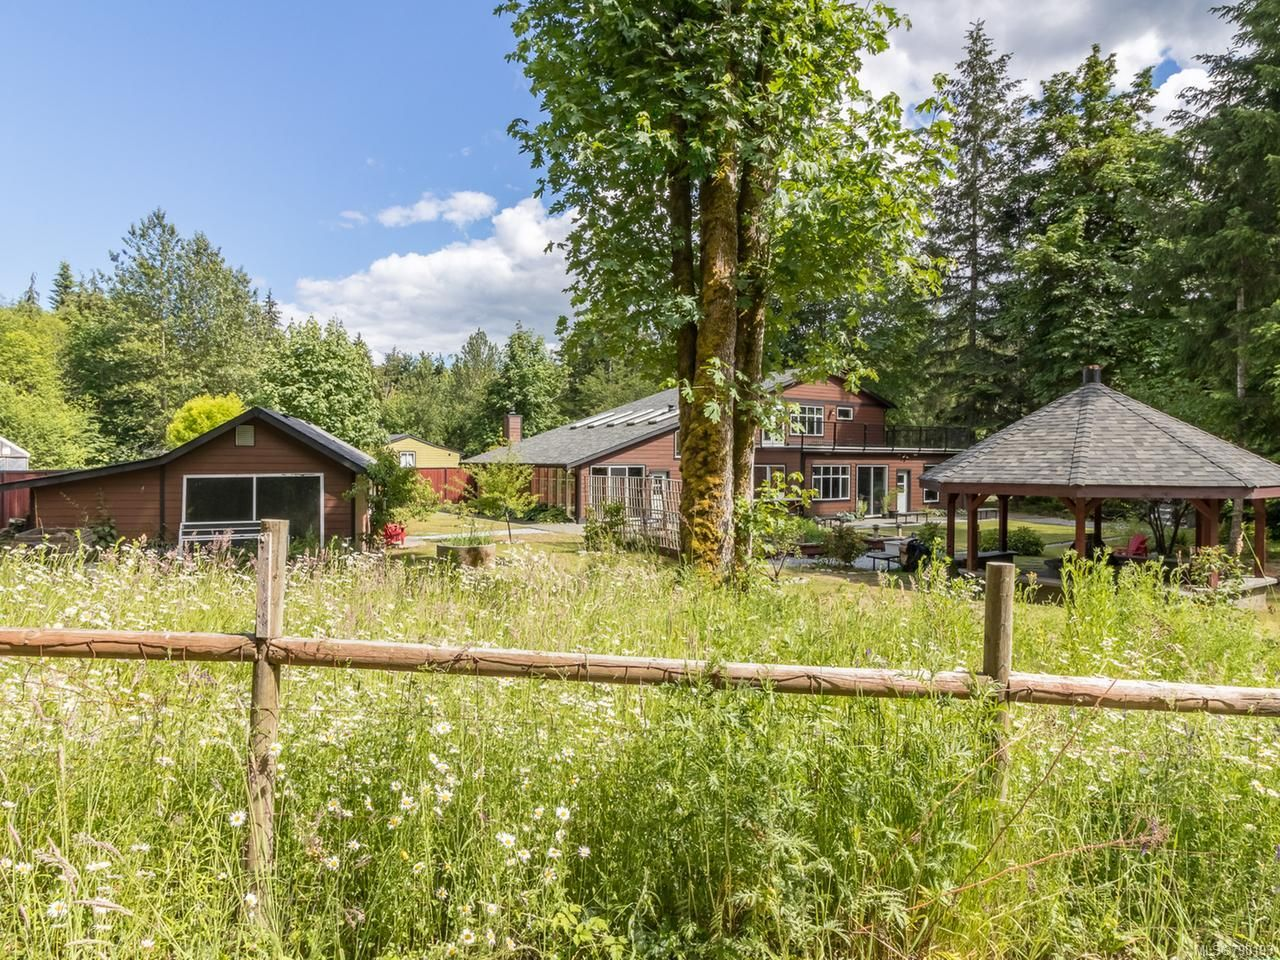 Main Photo: 5549 Carolyn Way in DUNCAN: Du West Duncan House for sale (Duncan)  : MLS®# 790193